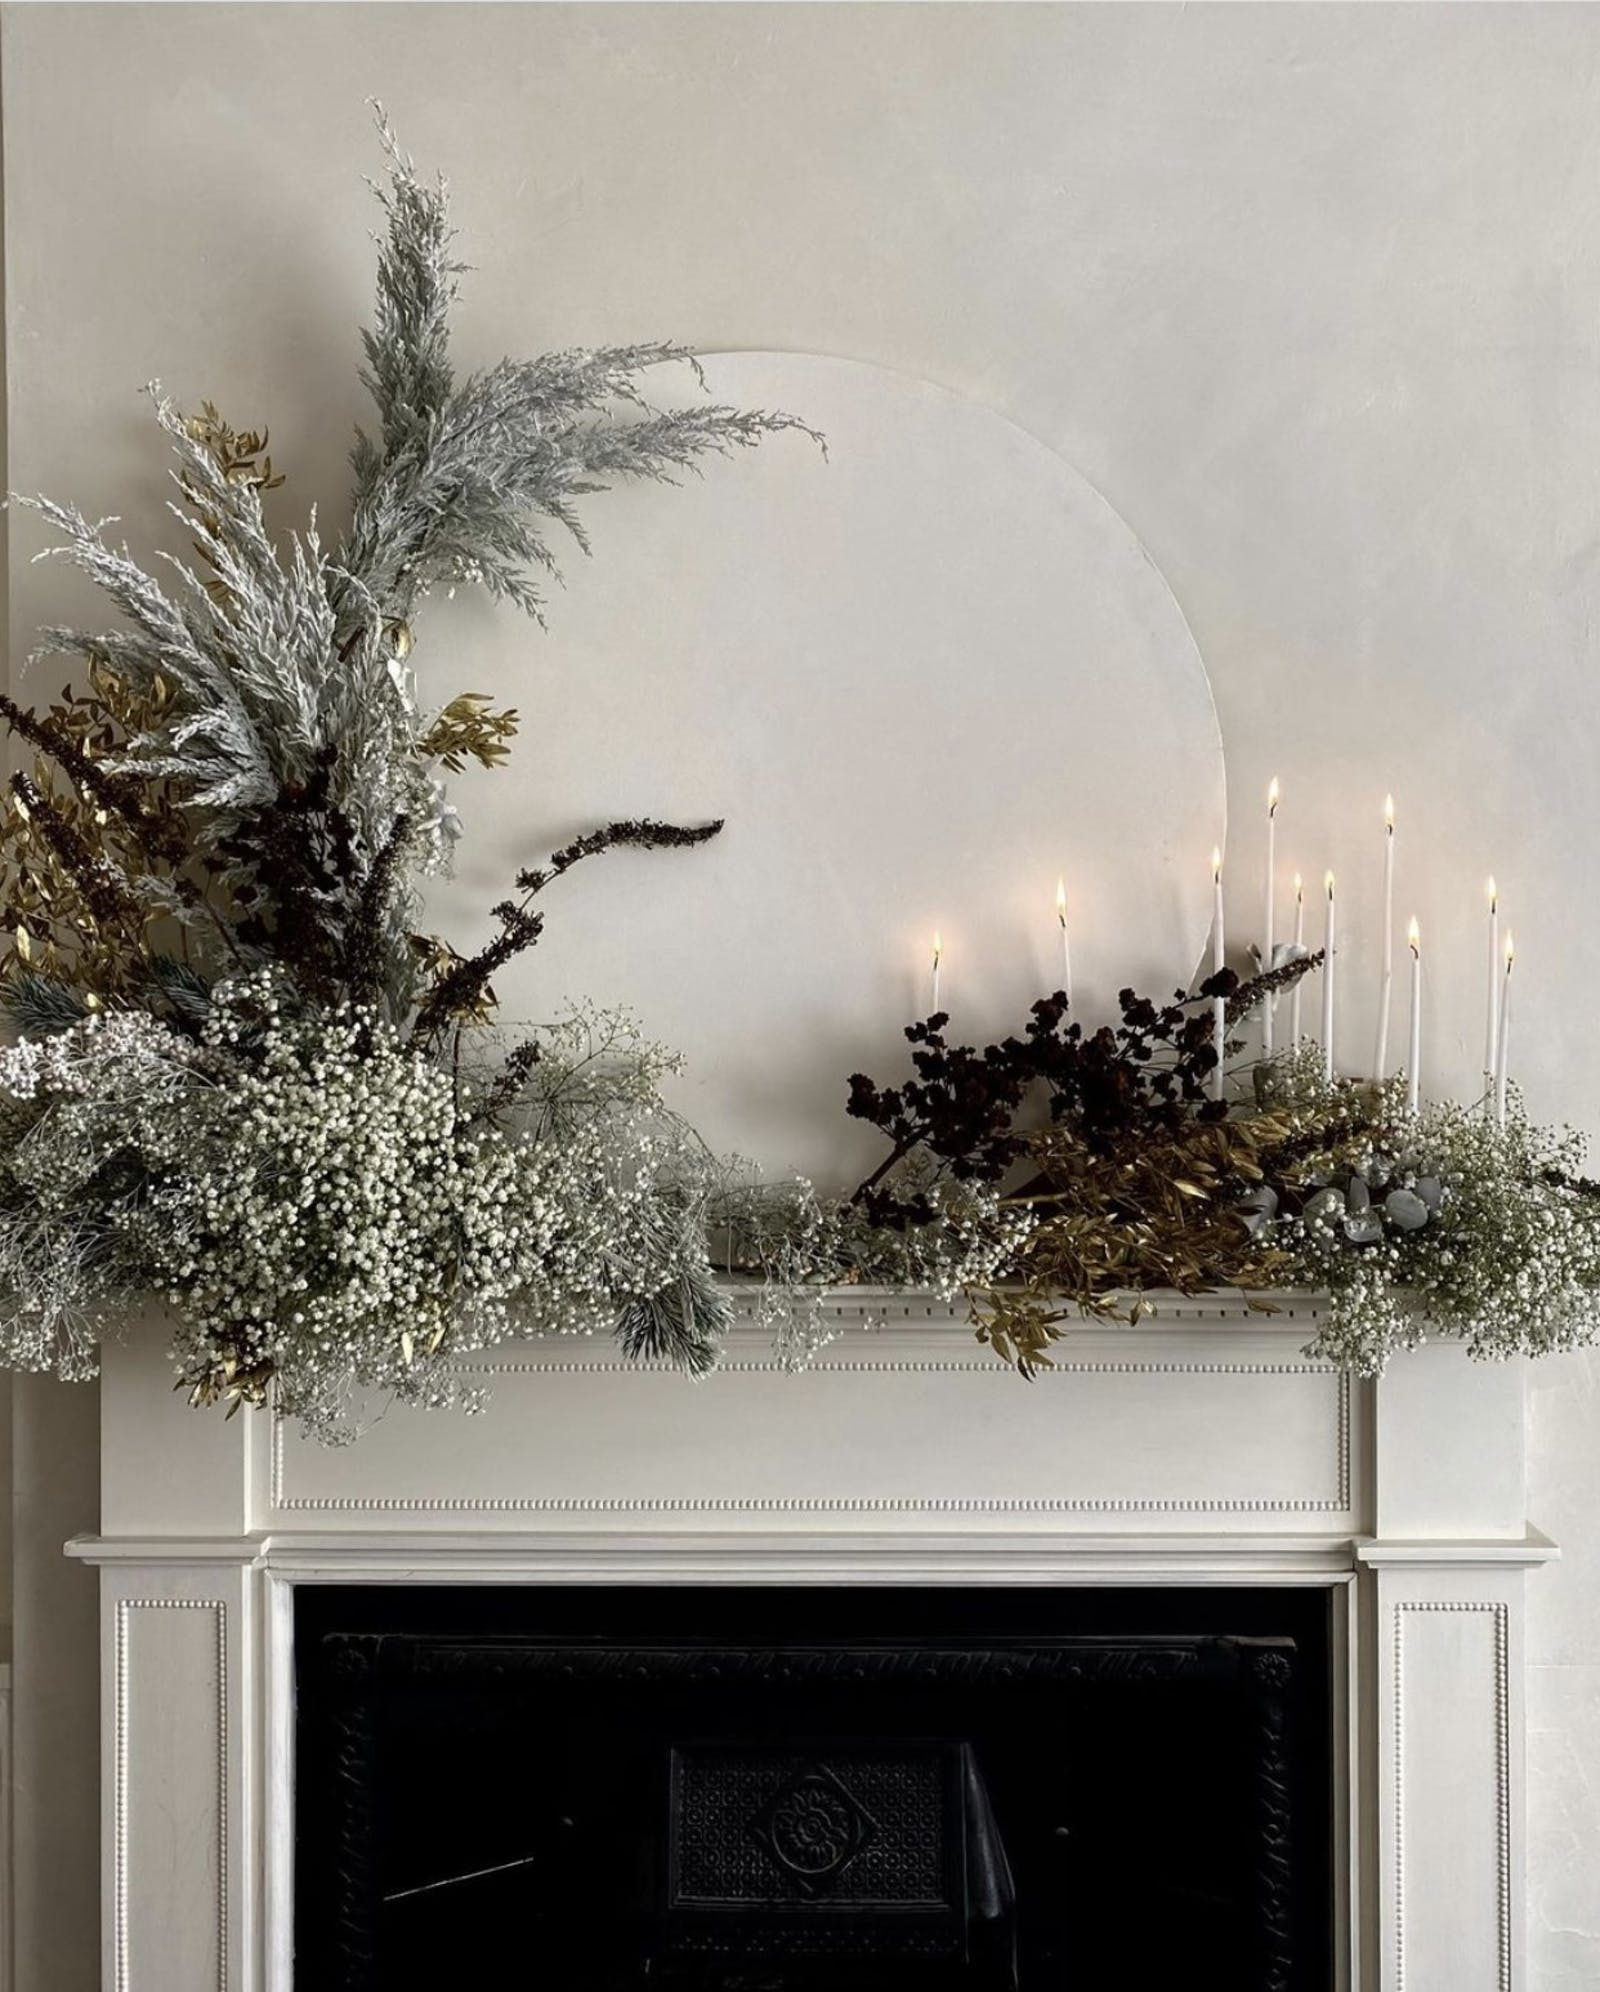 Foliage mantle display on fireplace with candles